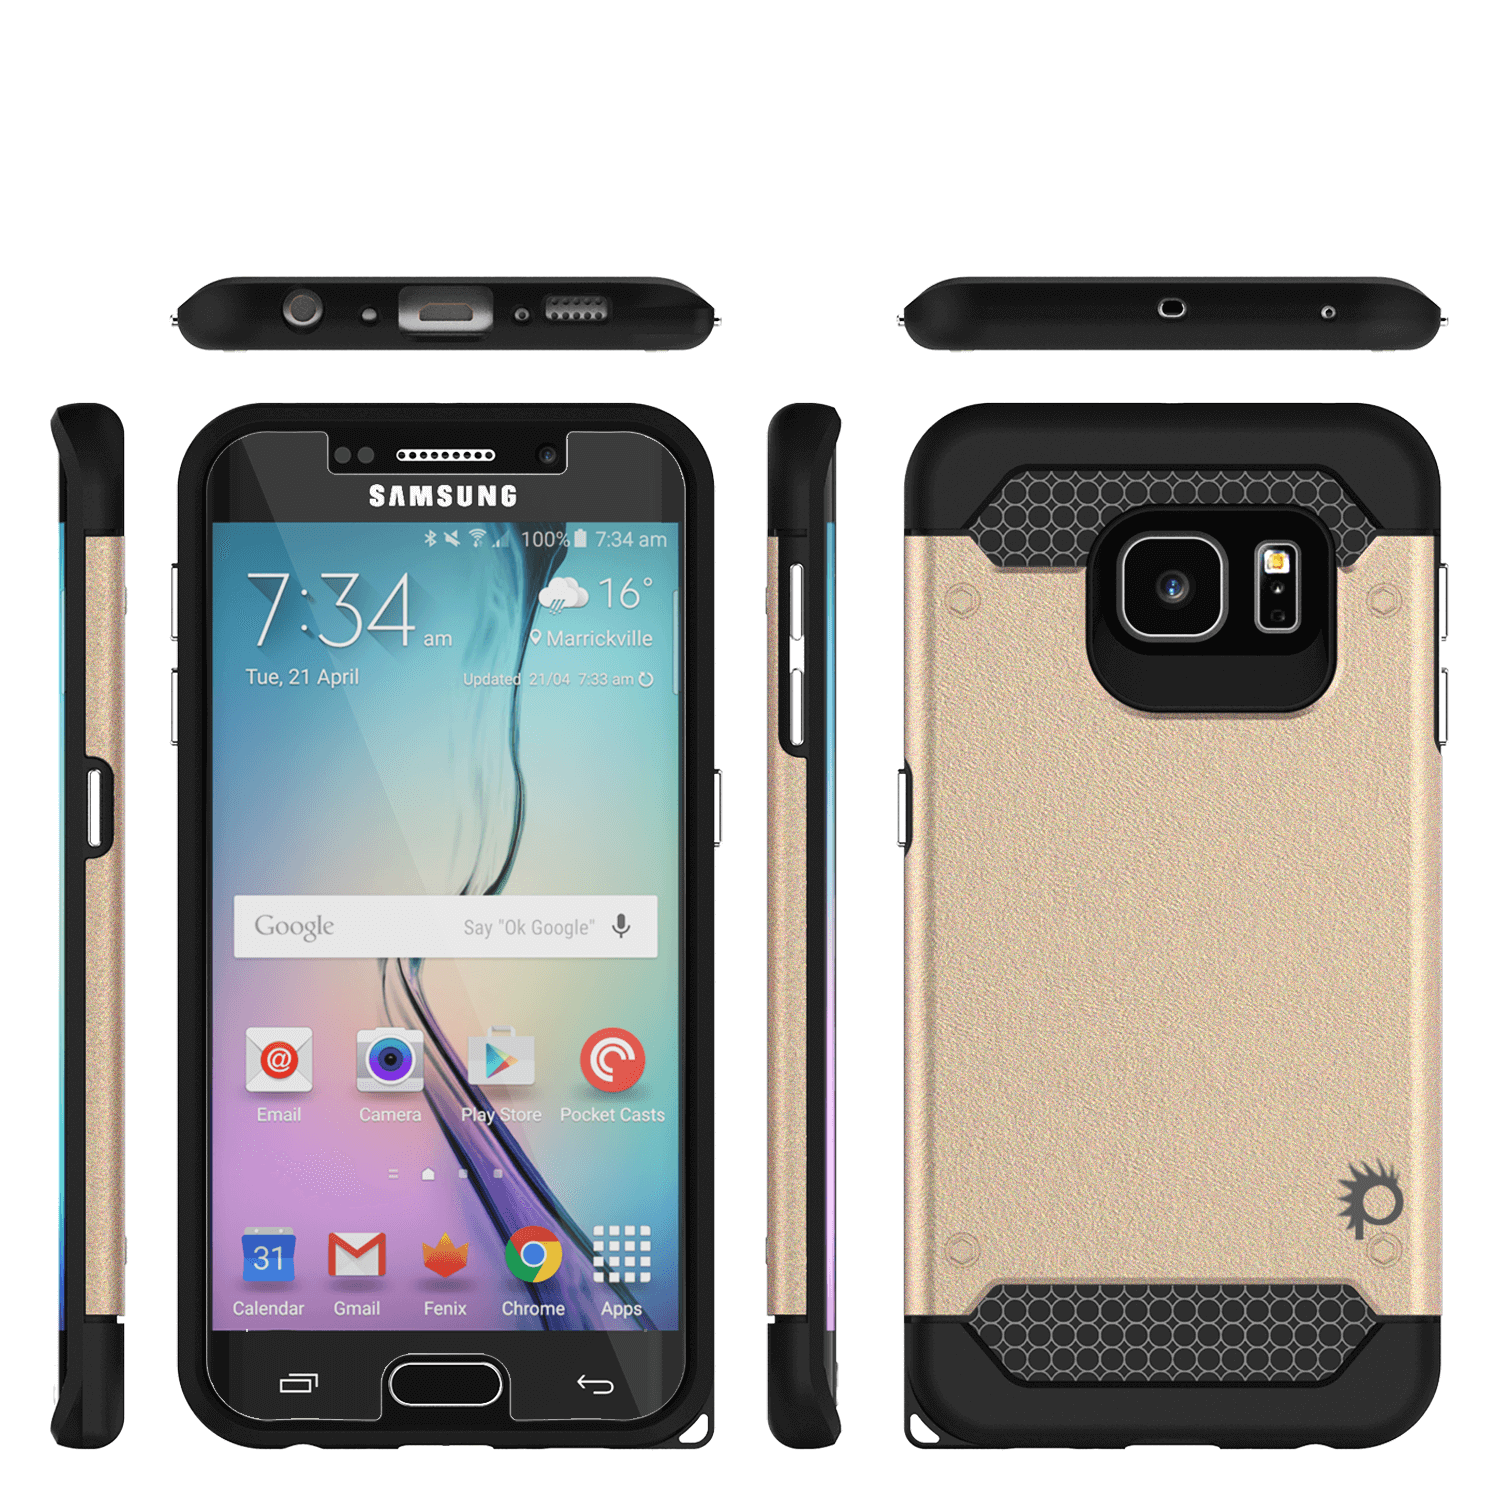 Galaxy s6 EDGE Case PunkCase Galactic Gold Series Slim Armor Soft Cover w/ Screen Protector